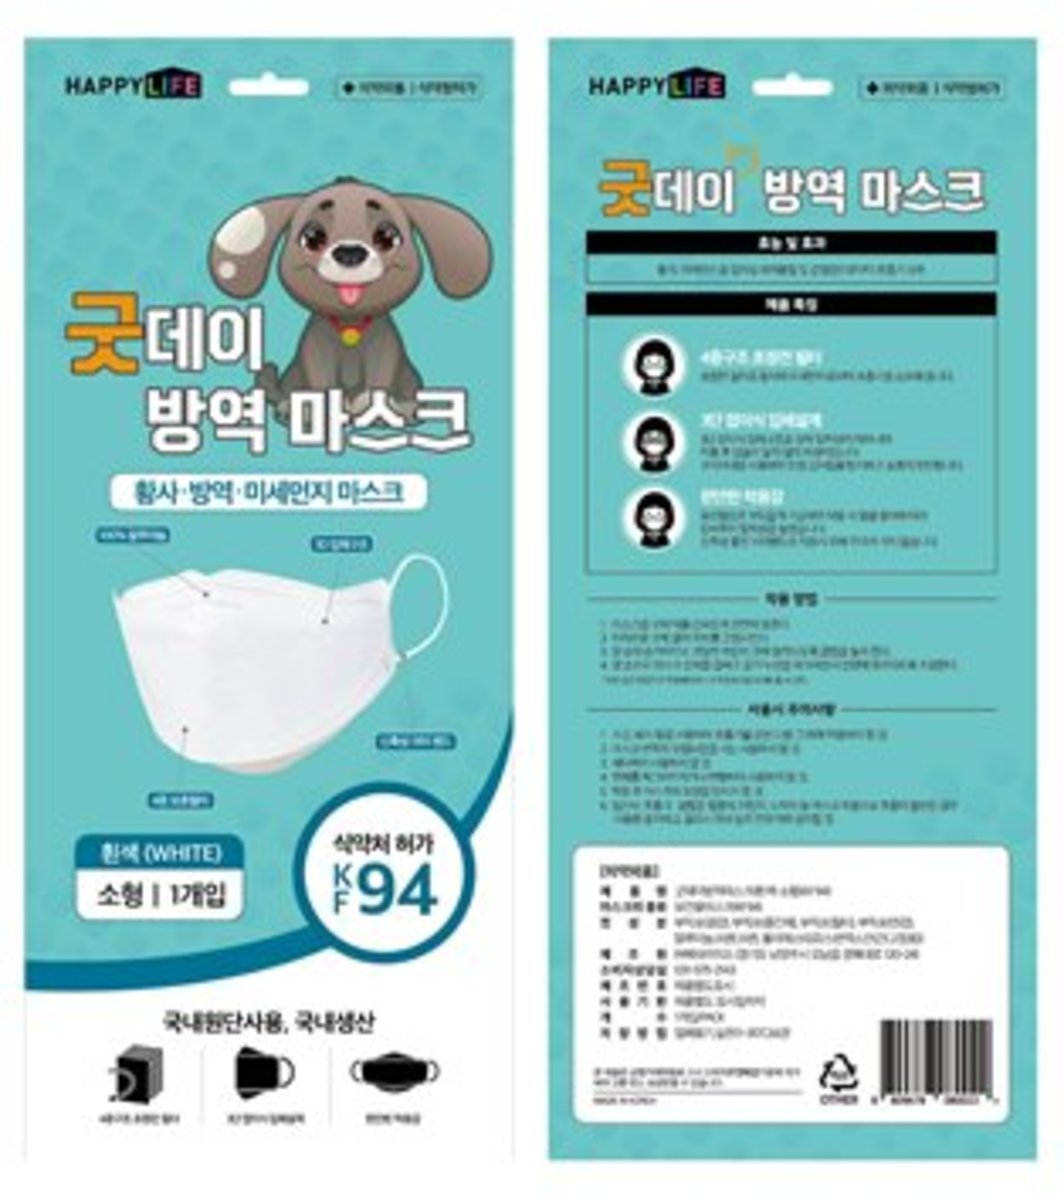 【Made in Korea】KF94 4-layer three-dimensional masks individually packaged (1 pc/pack) kid use white